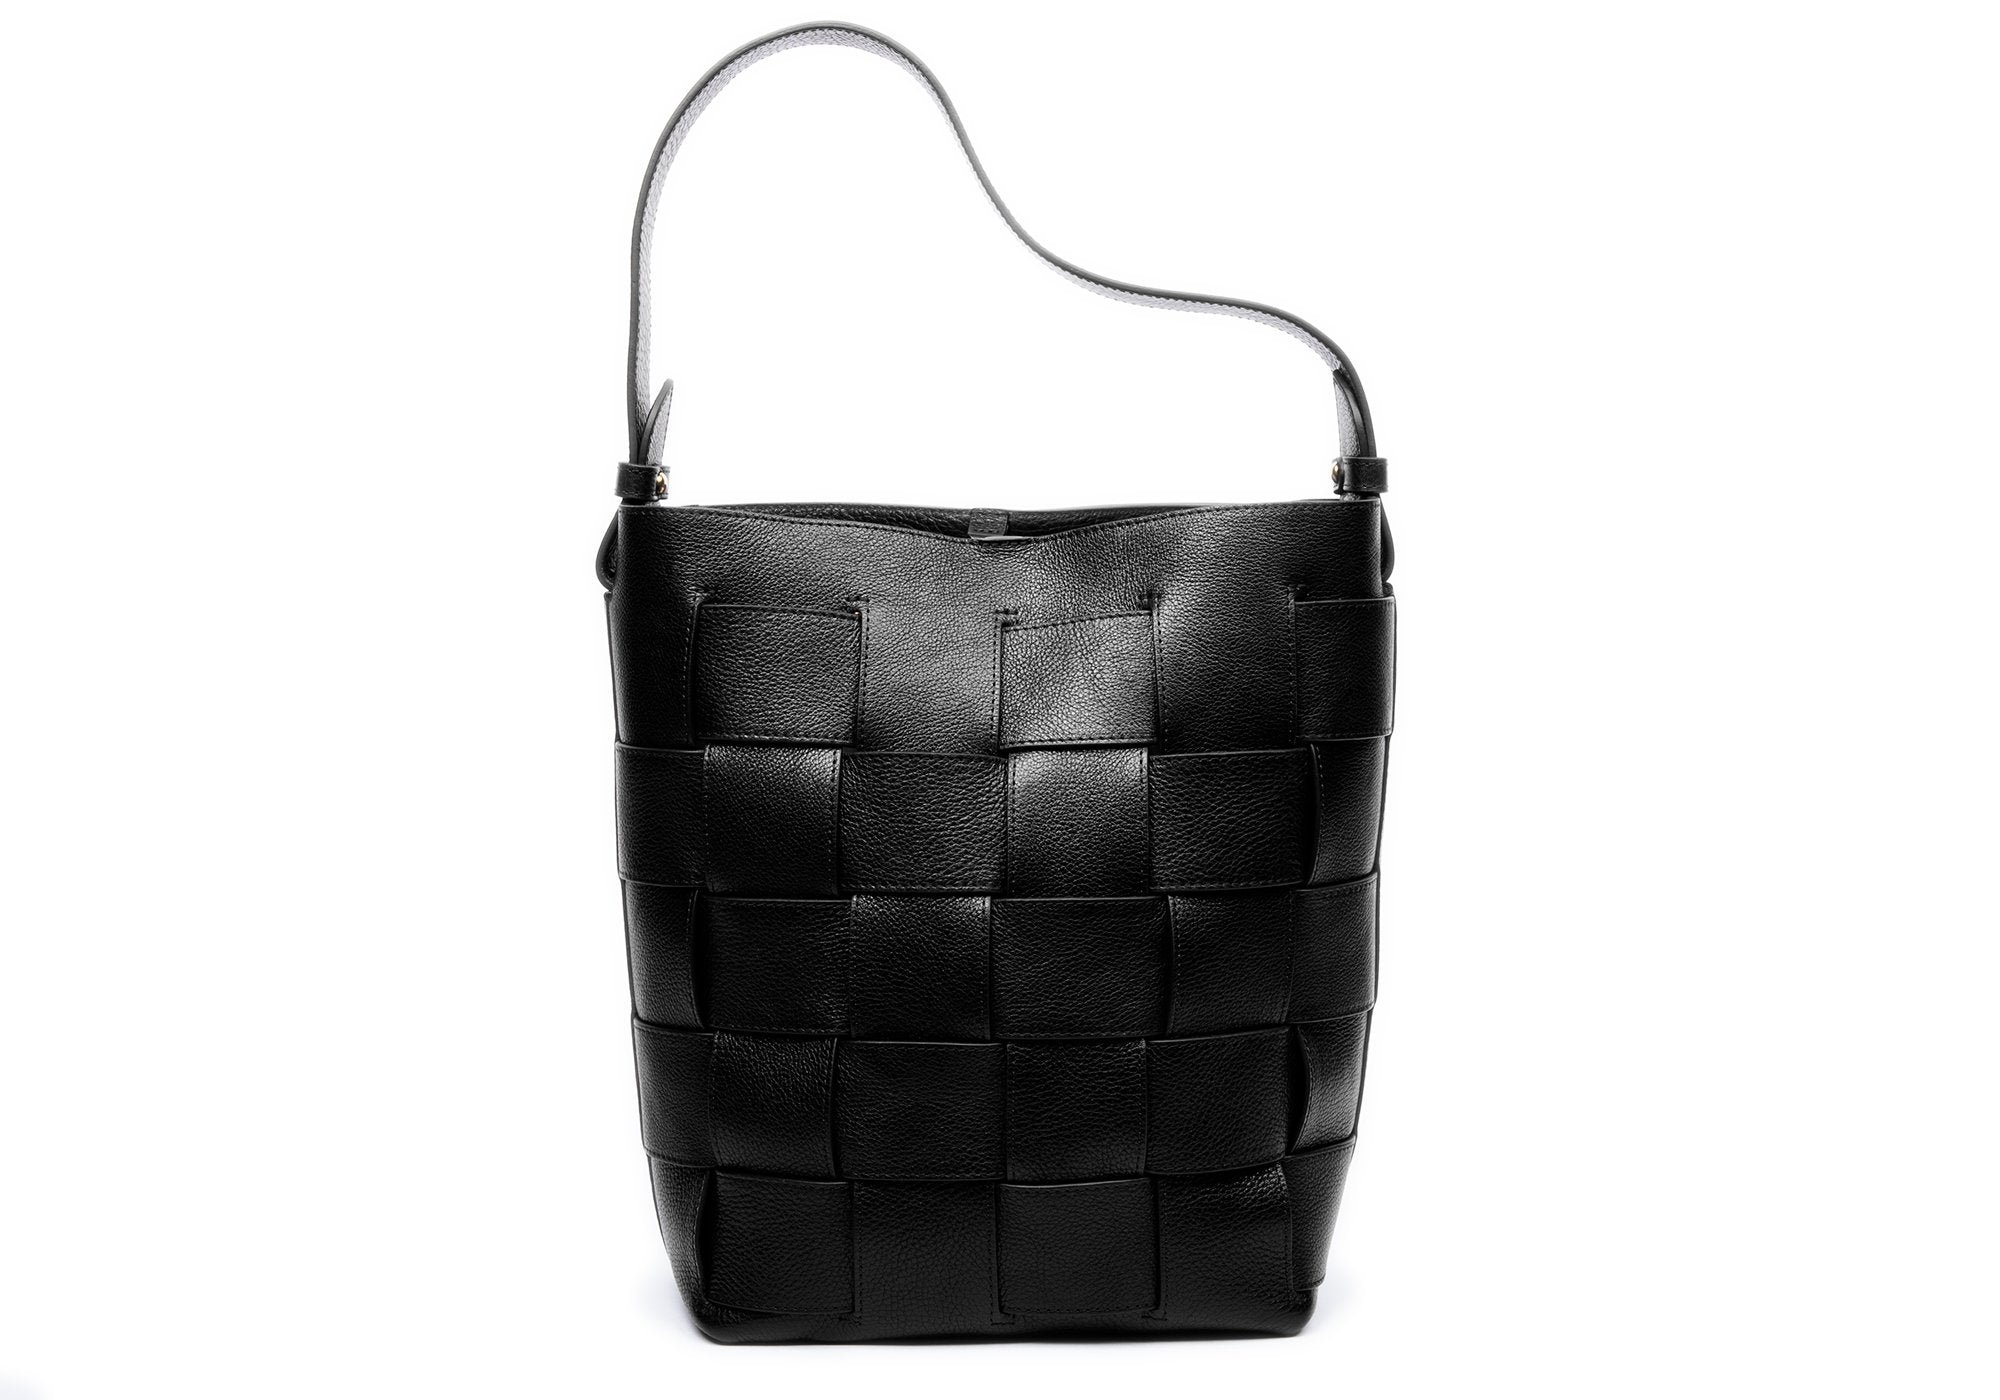 Woven Leather Bucket Shoulder Bag Black